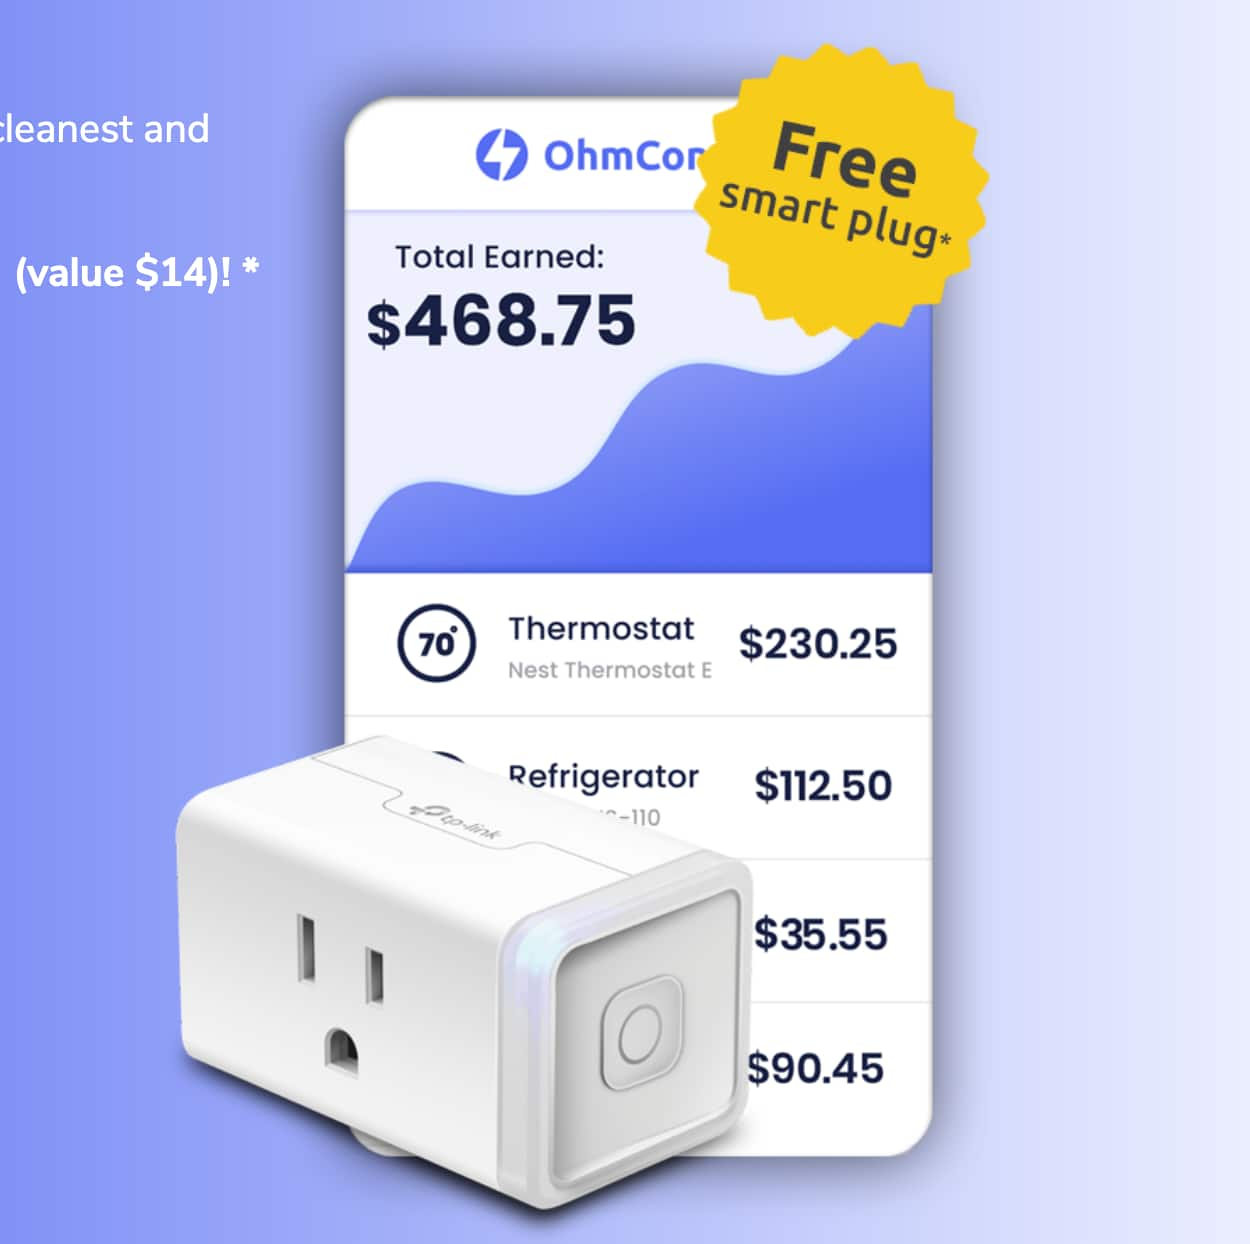 Free TP-Link Smart Plug (New OhmConnect Users Only - Valid in Select California Cities)